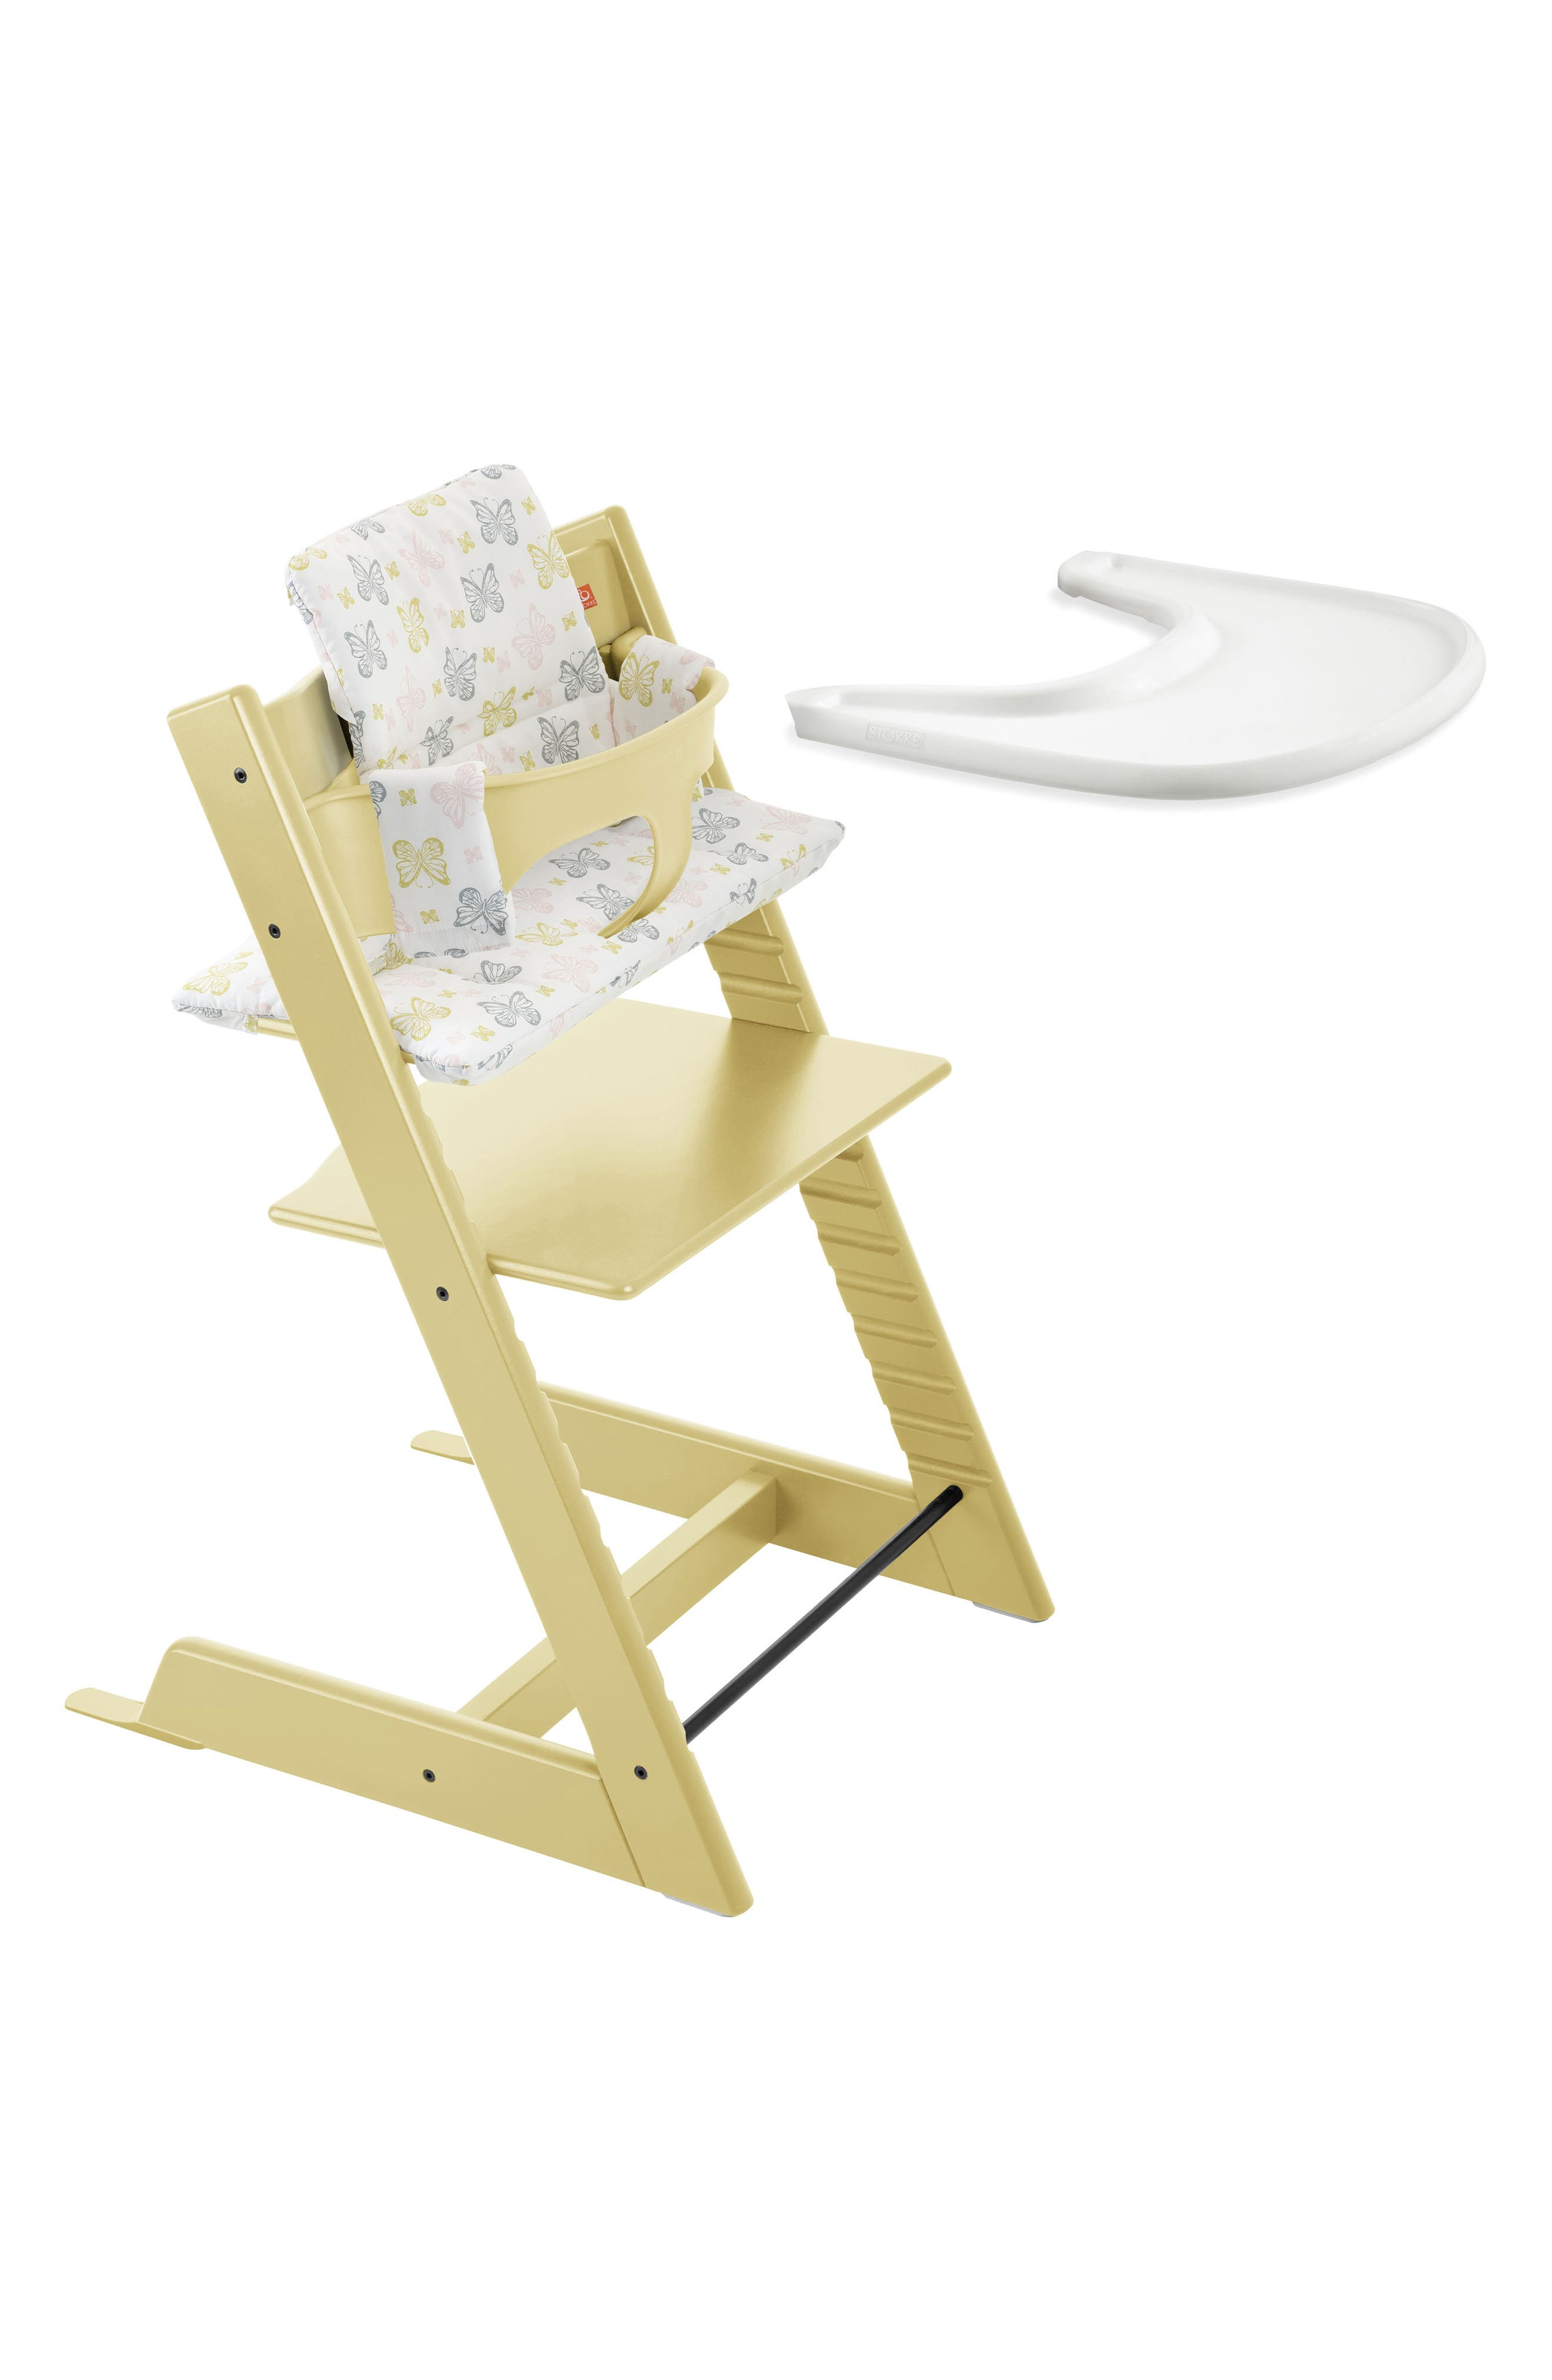 Tripp Trapp<sup>®</sup> High Chair, Baby Set, Cushion & Tray Set,                             Alternate thumbnail 3, color,                             703